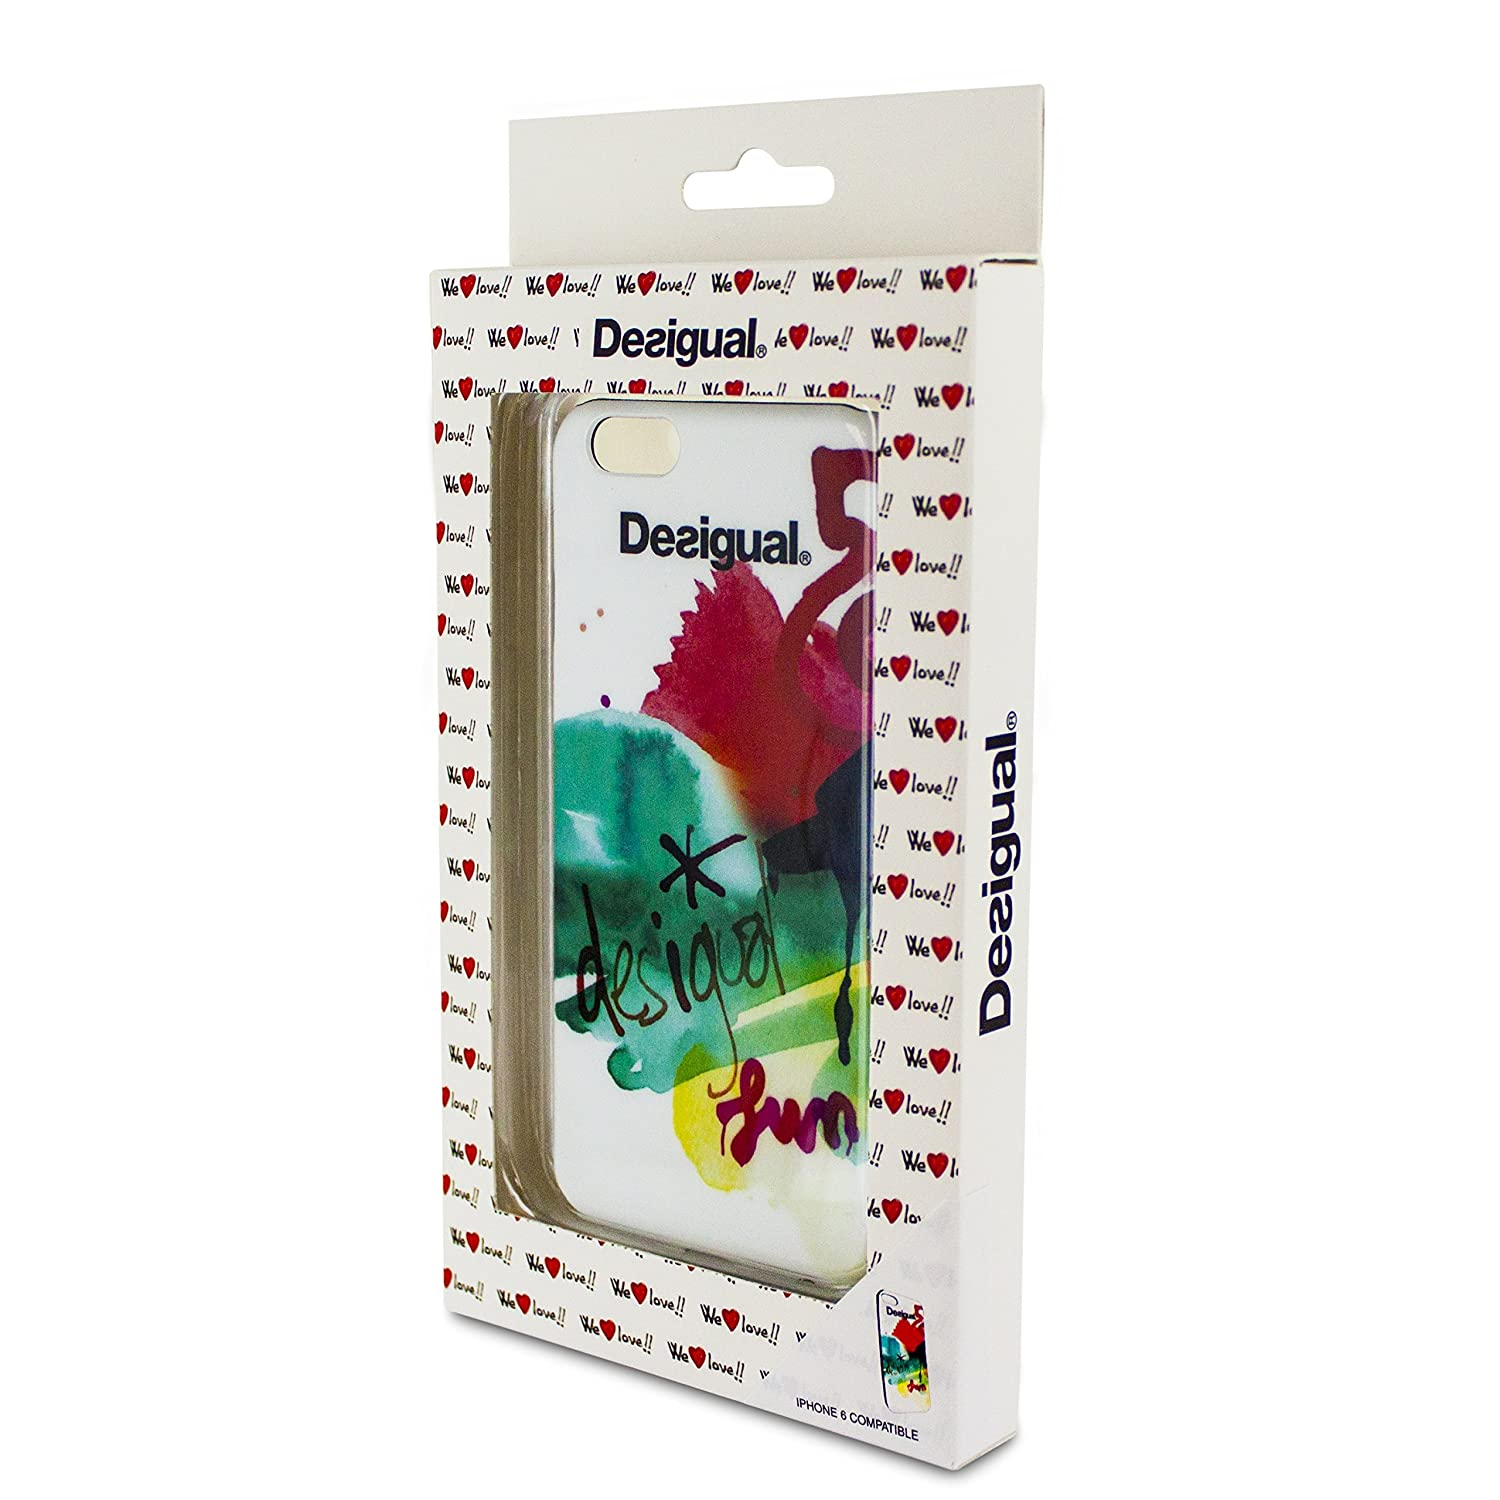 coque iphone 7 plus desigual